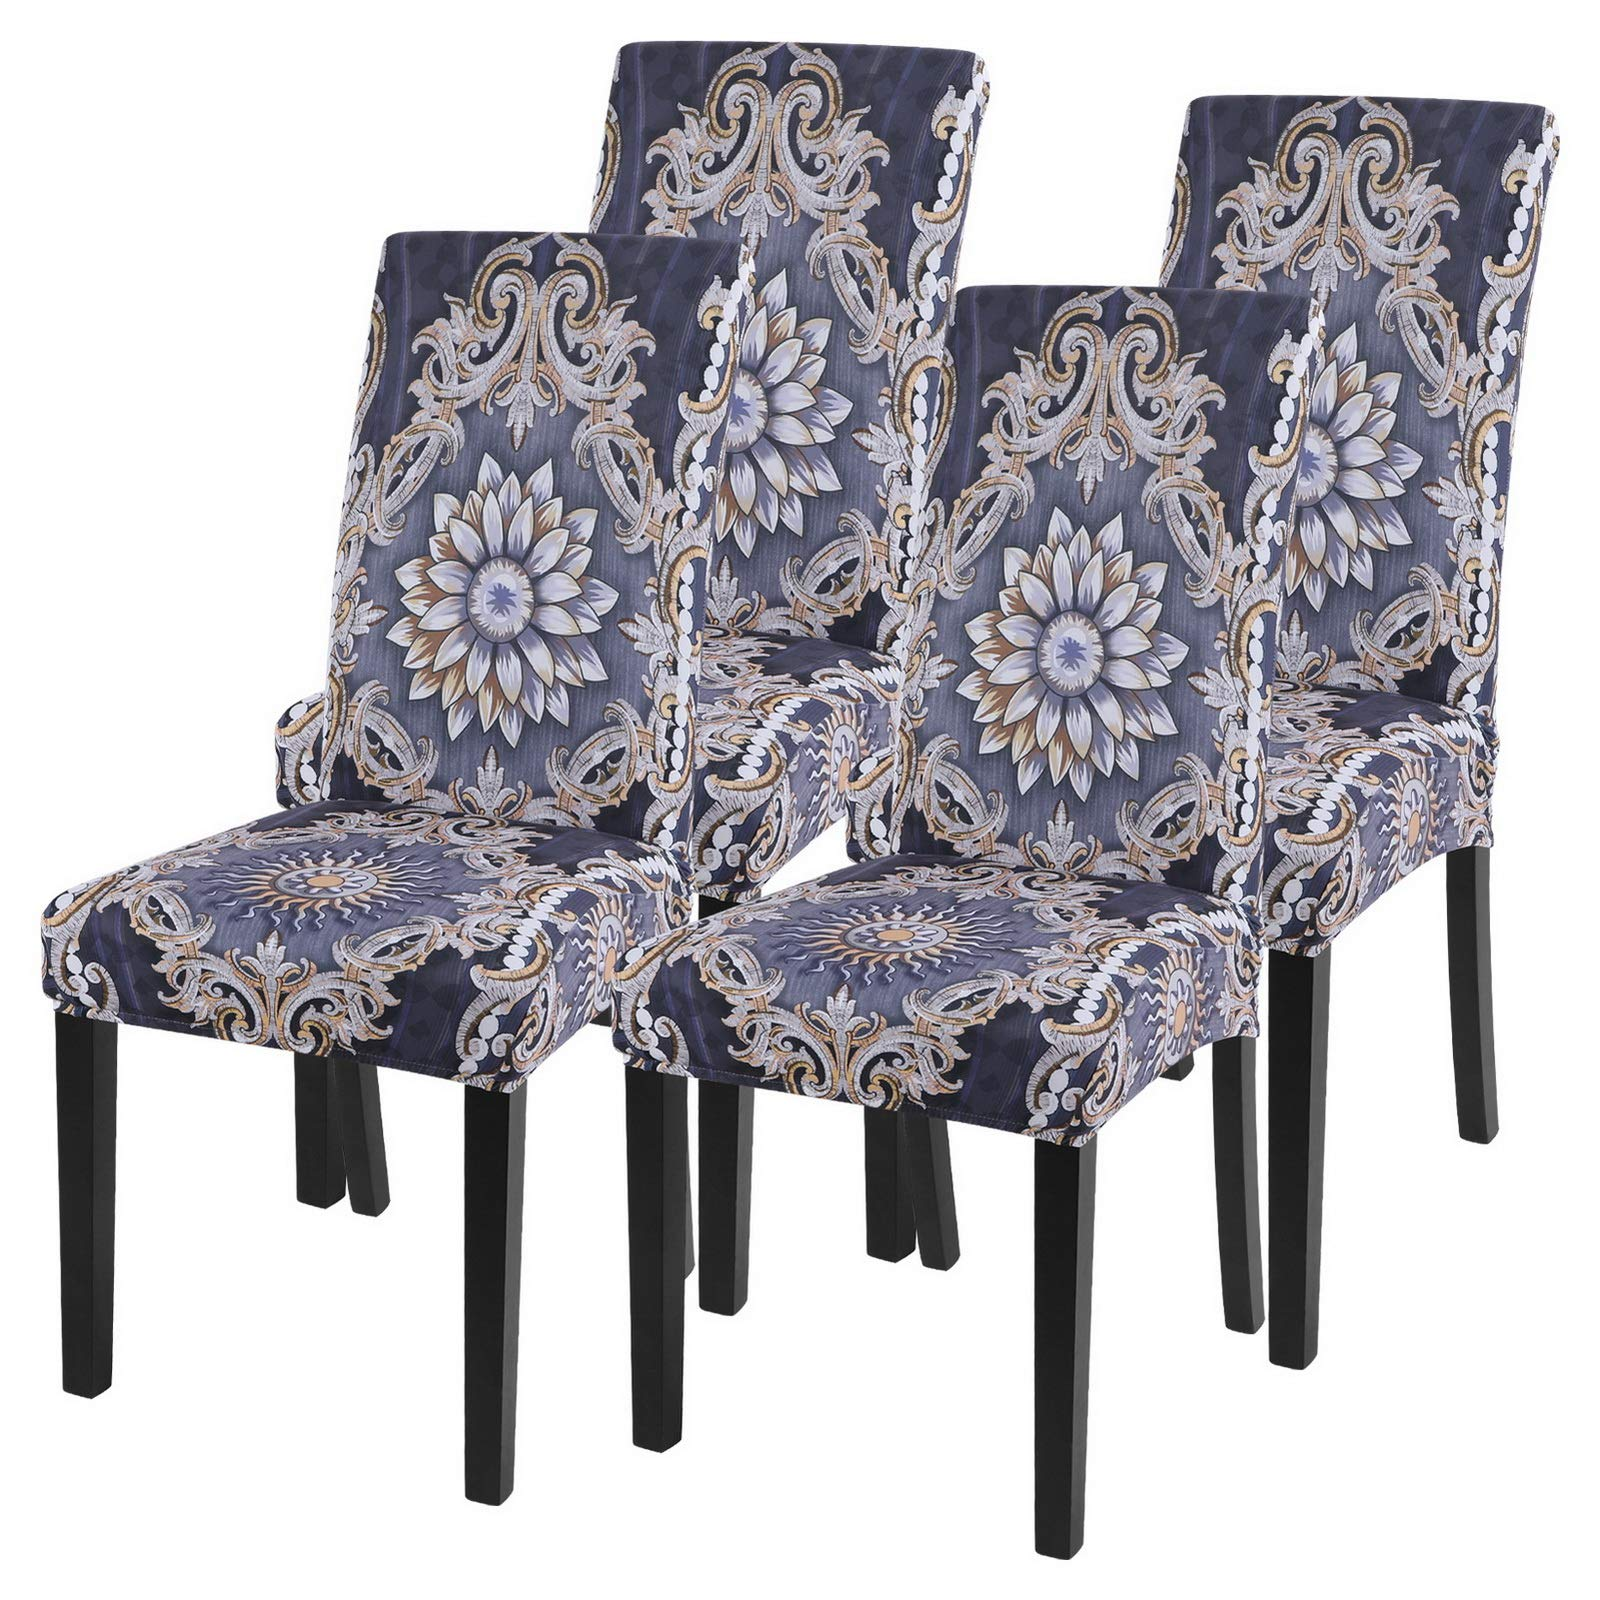 SearchI Dining Room Chair Covers Slipcovers Set of 4, Spandex Super Fit Stretch Removable Washable Kitchen Parsons Chair Covers Protector for Dining Room,Hotel,Ceremony(Pattern4)